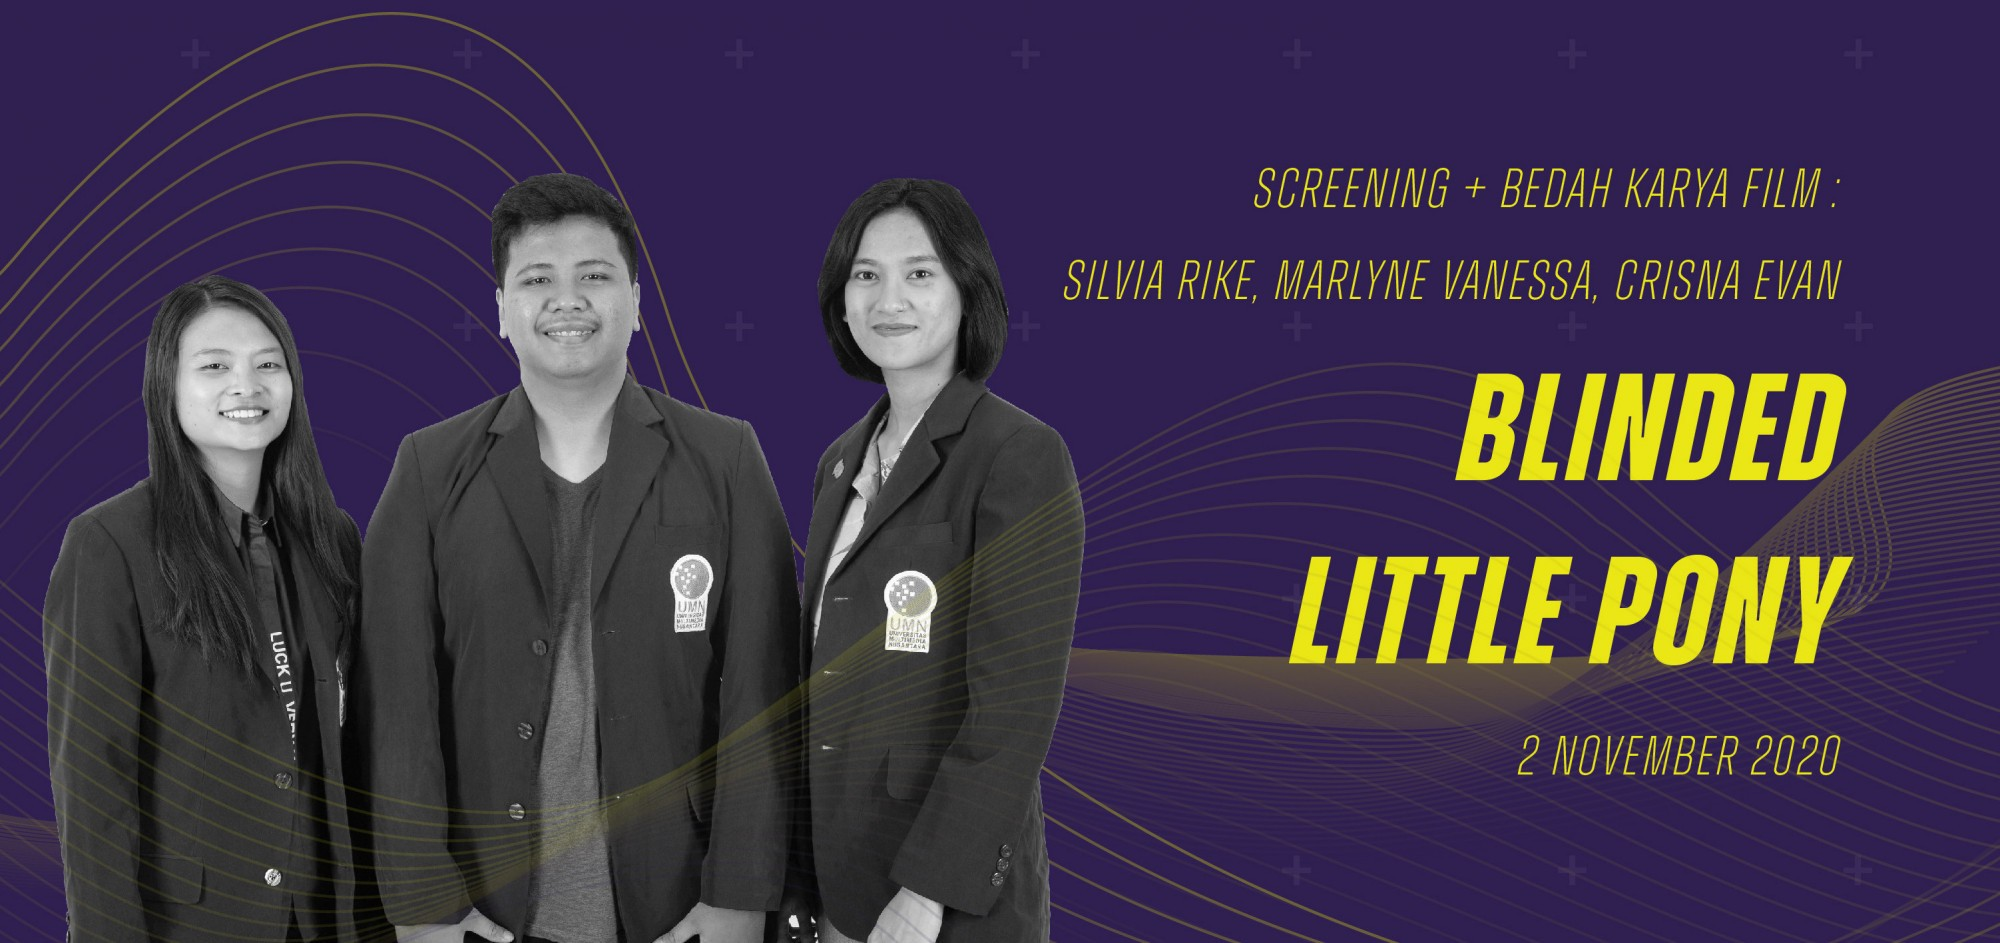 "Screening + Bedah Karya Film ""Blinded Little Pony"""